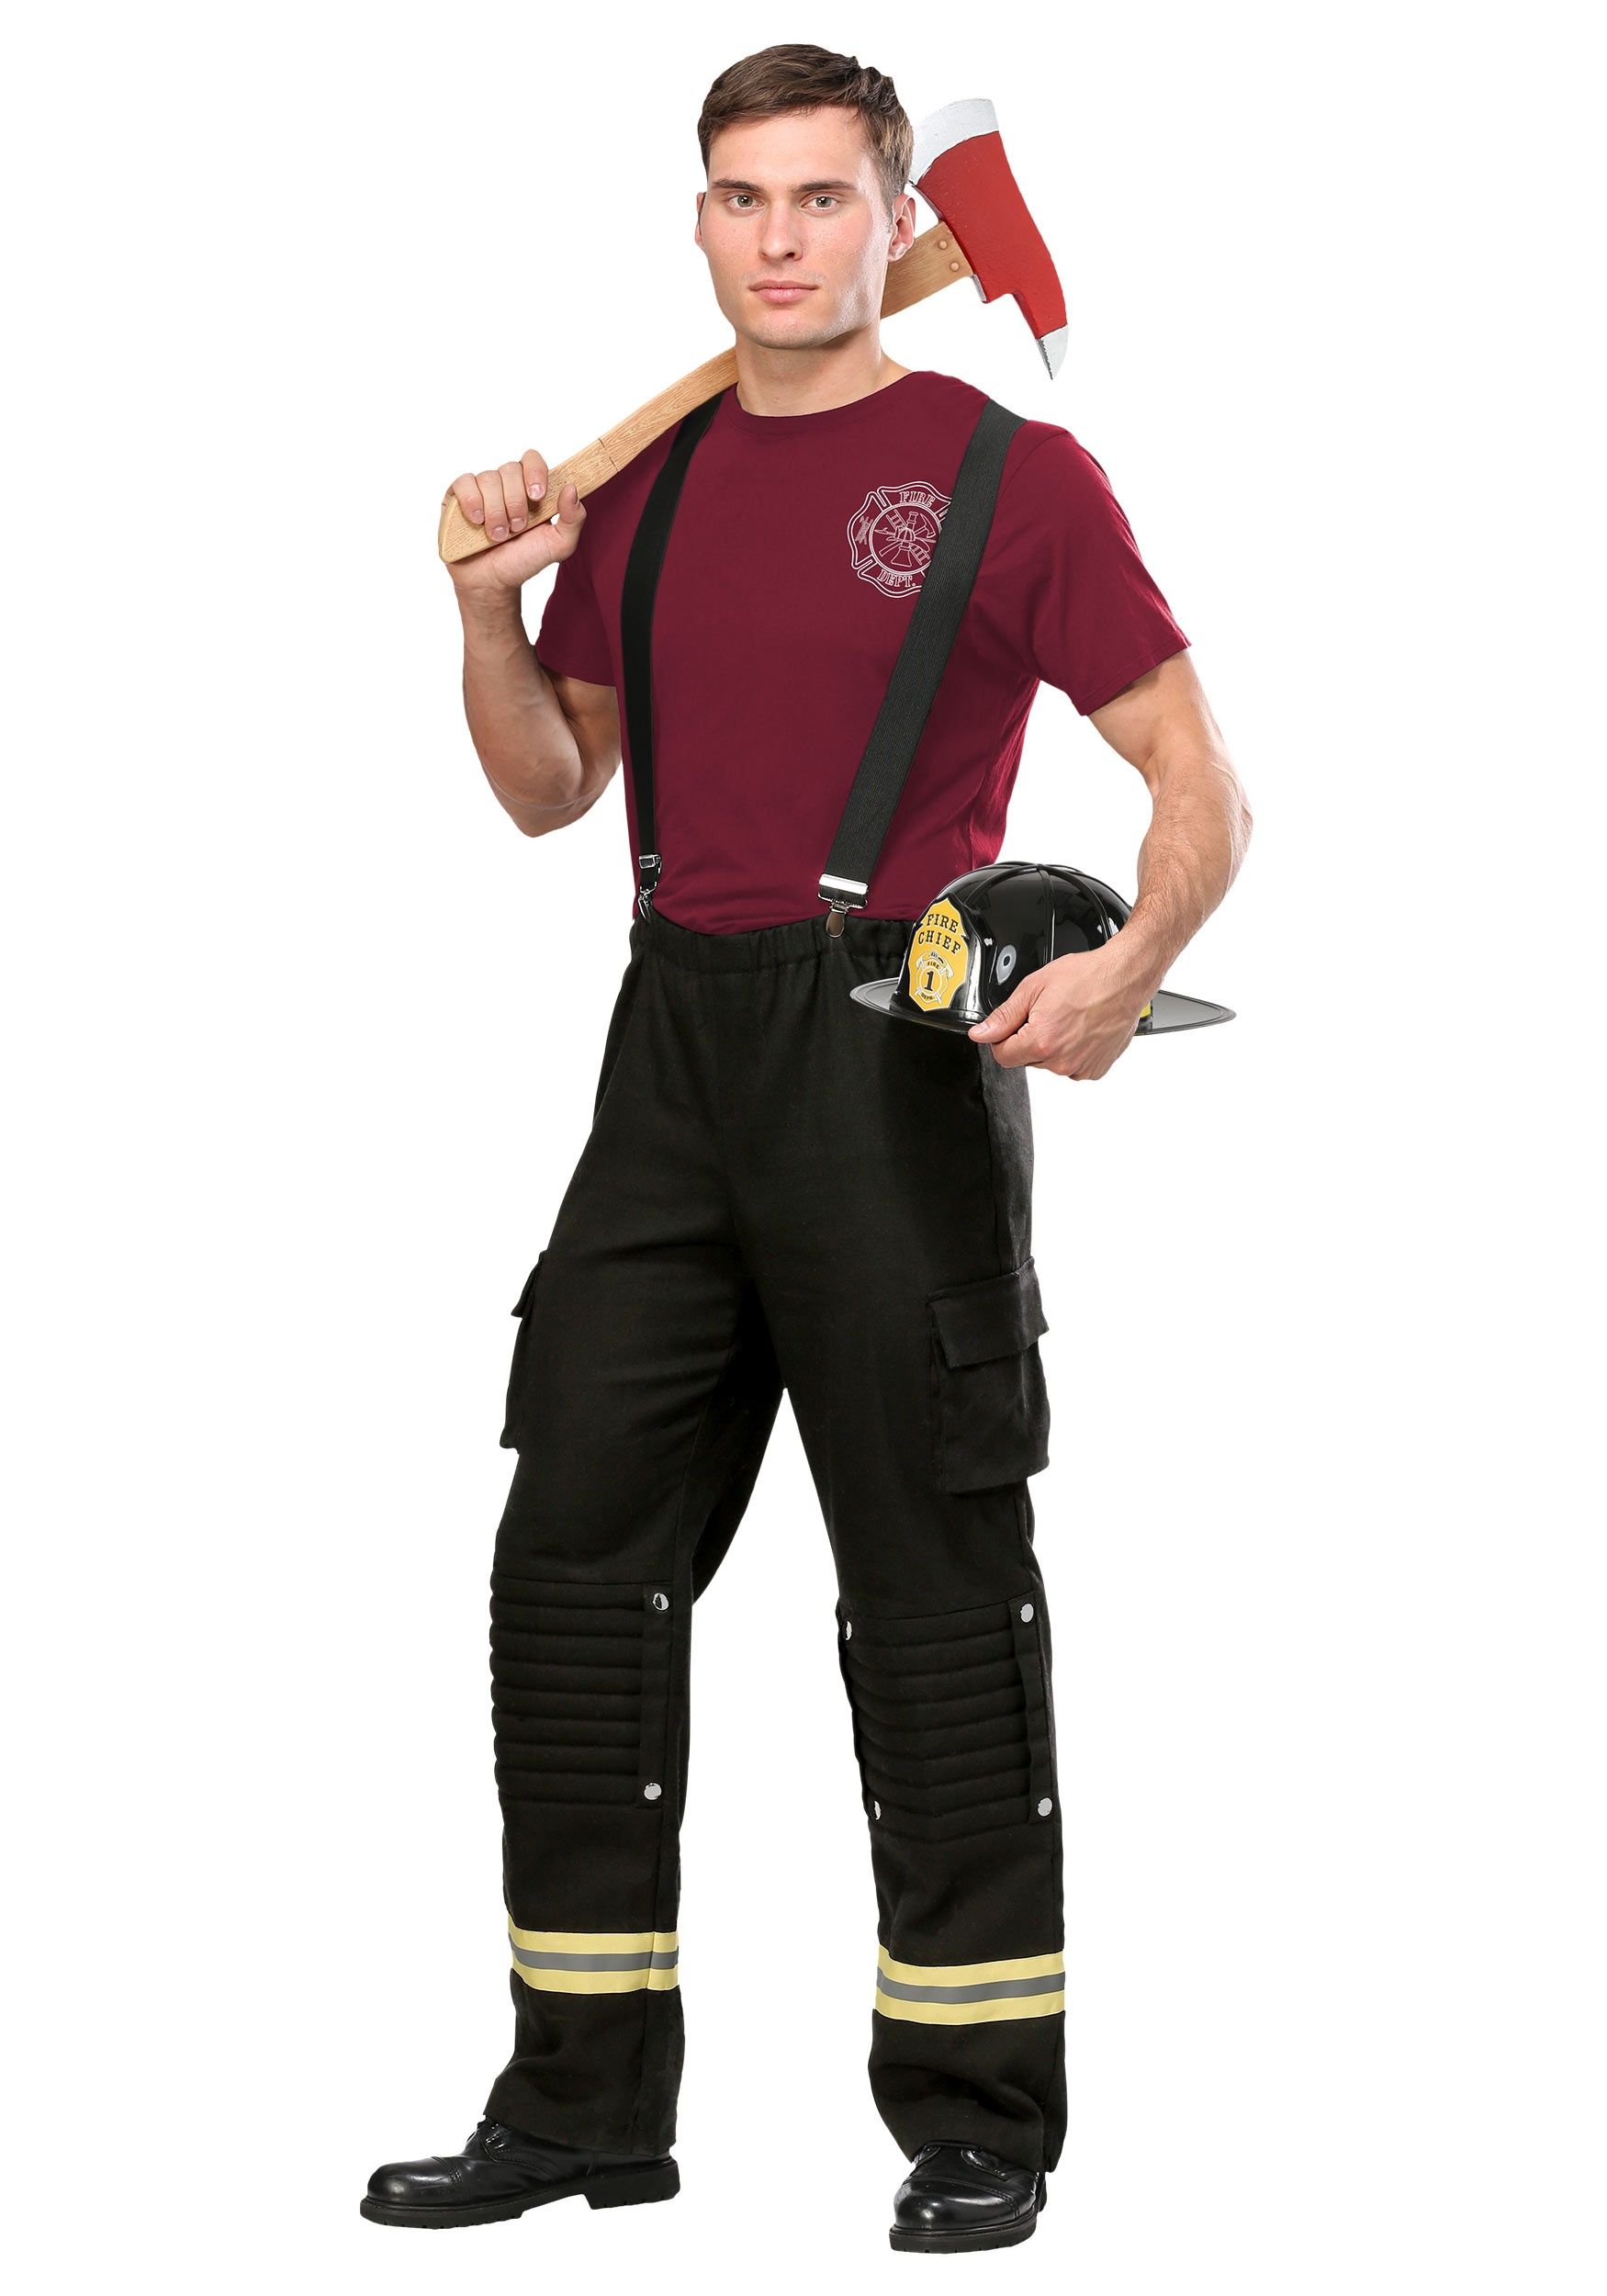 Fire Captain Costume For Men